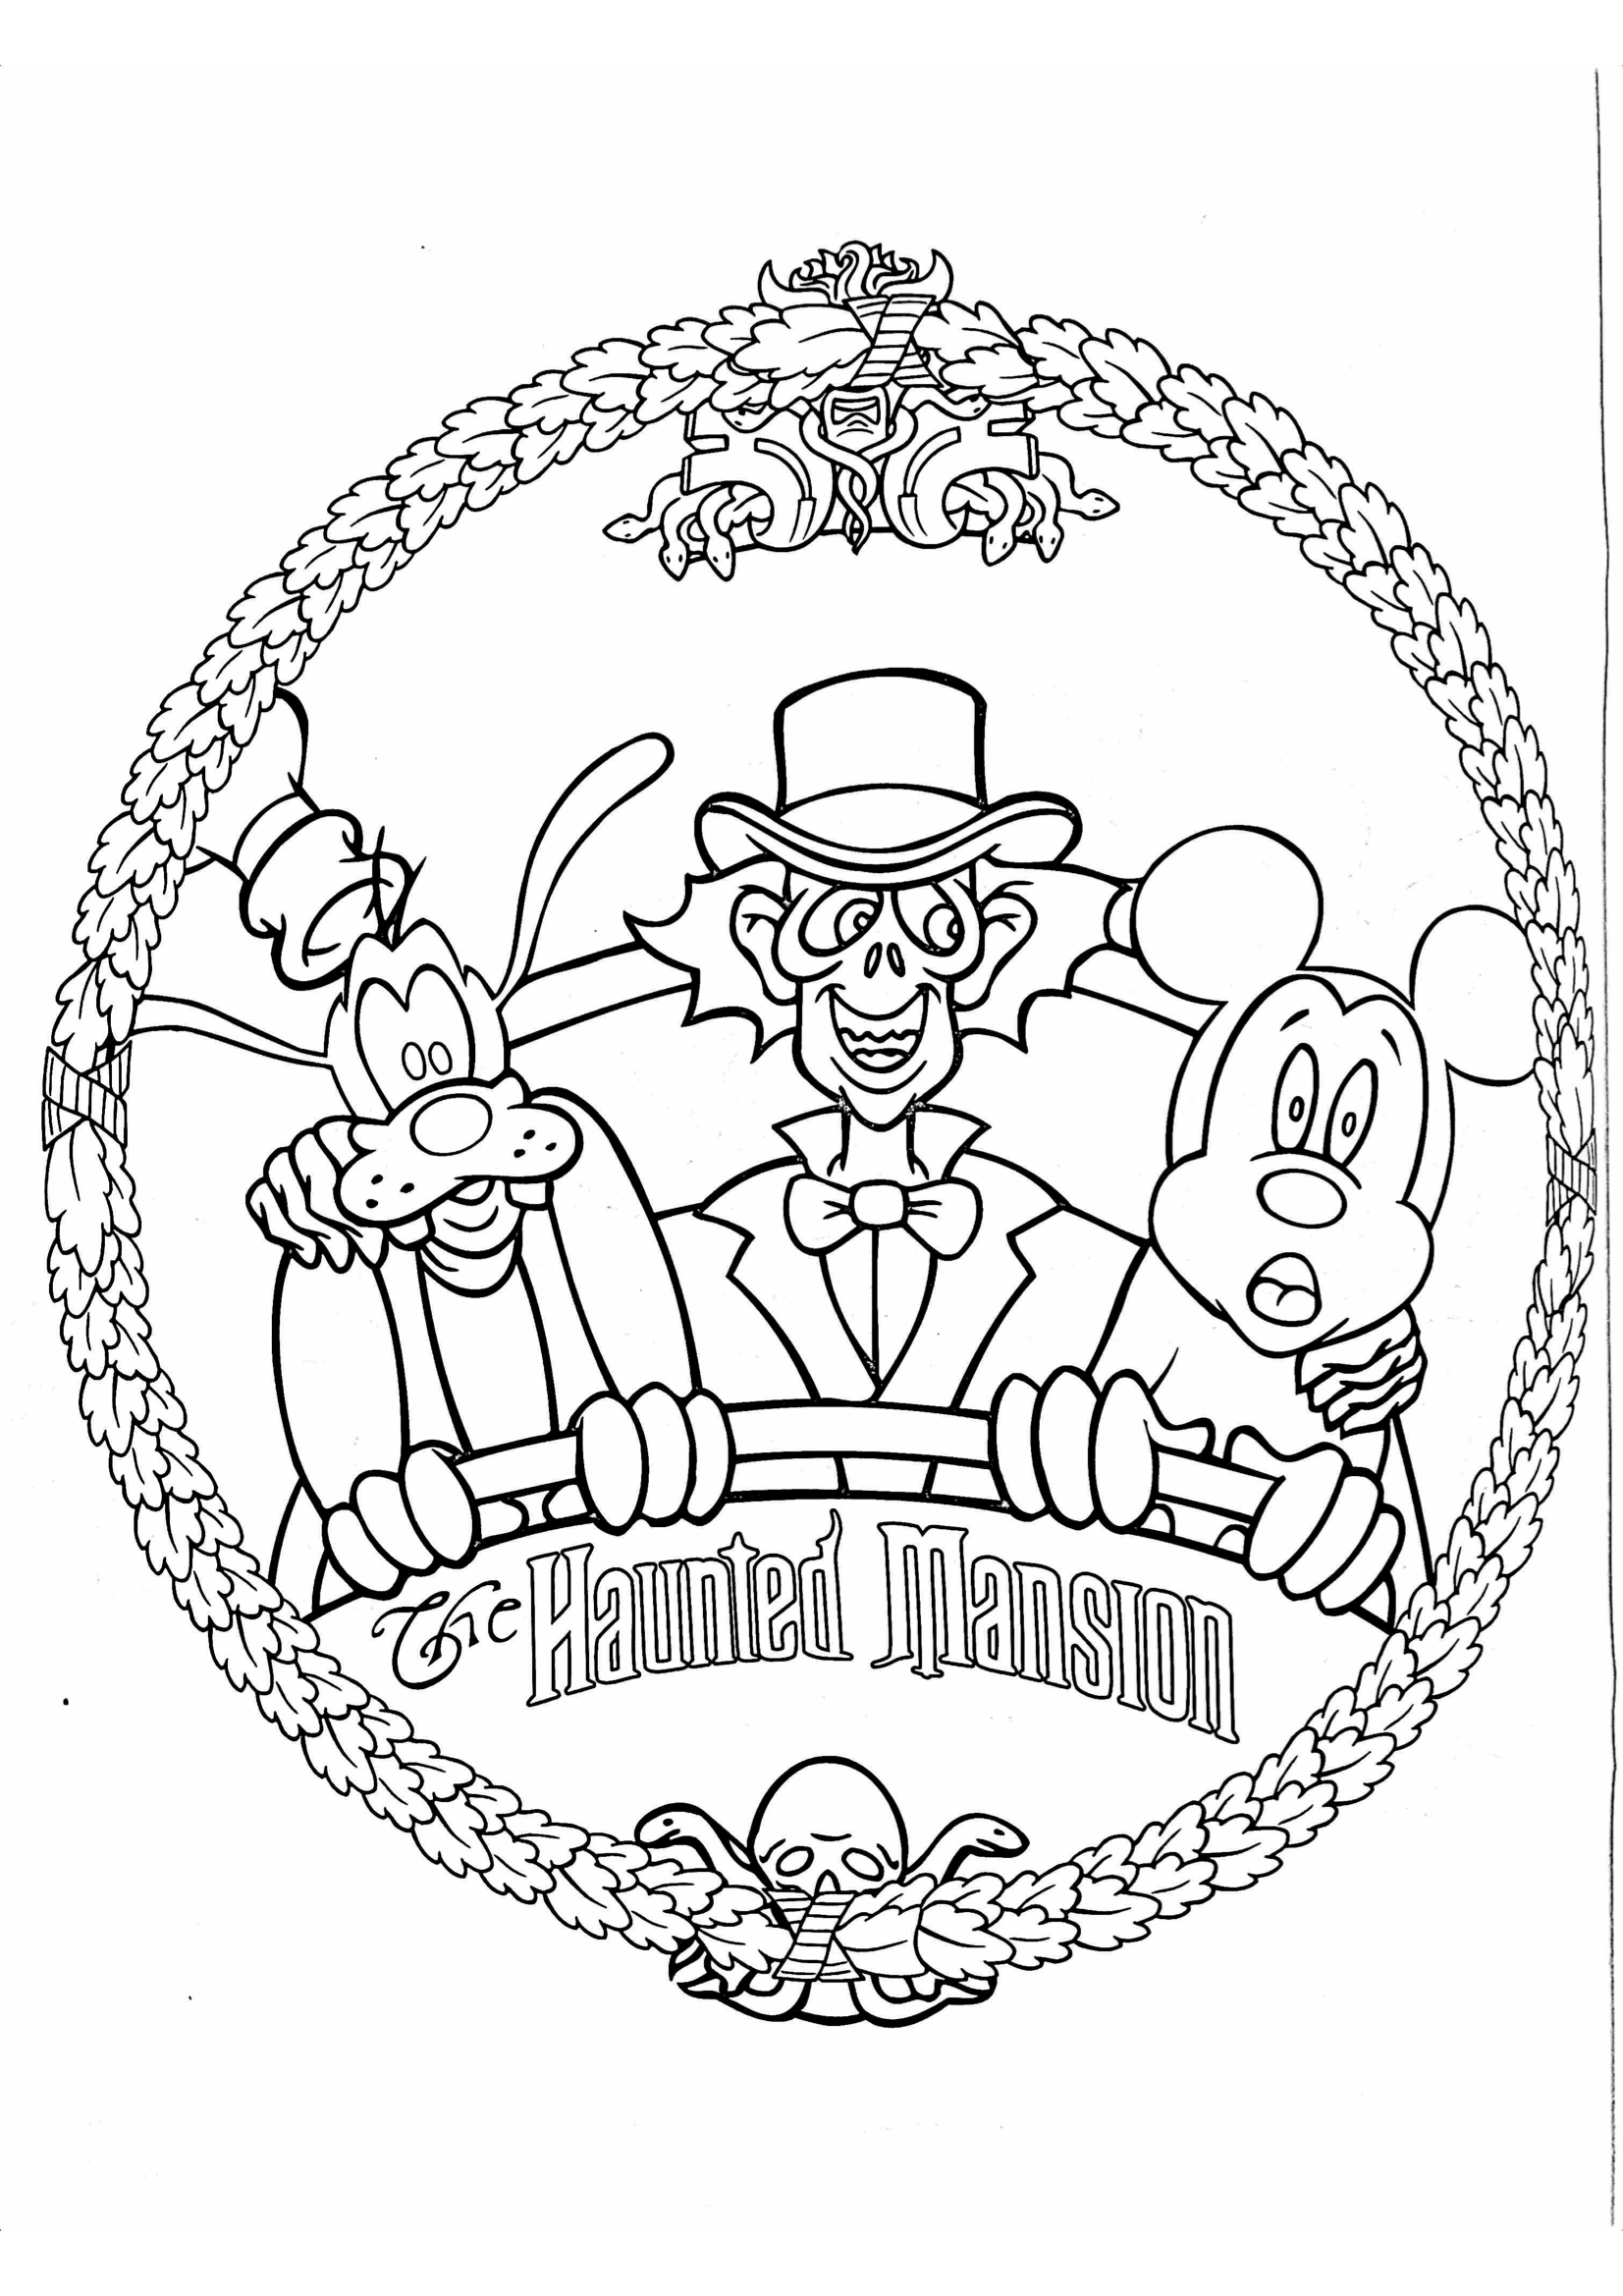 How To Rock A Disney Day At Home Gone With The Twins Halloween Coloring Pages Disney Halloween Coloring Pages Free Halloween Coloring Pages